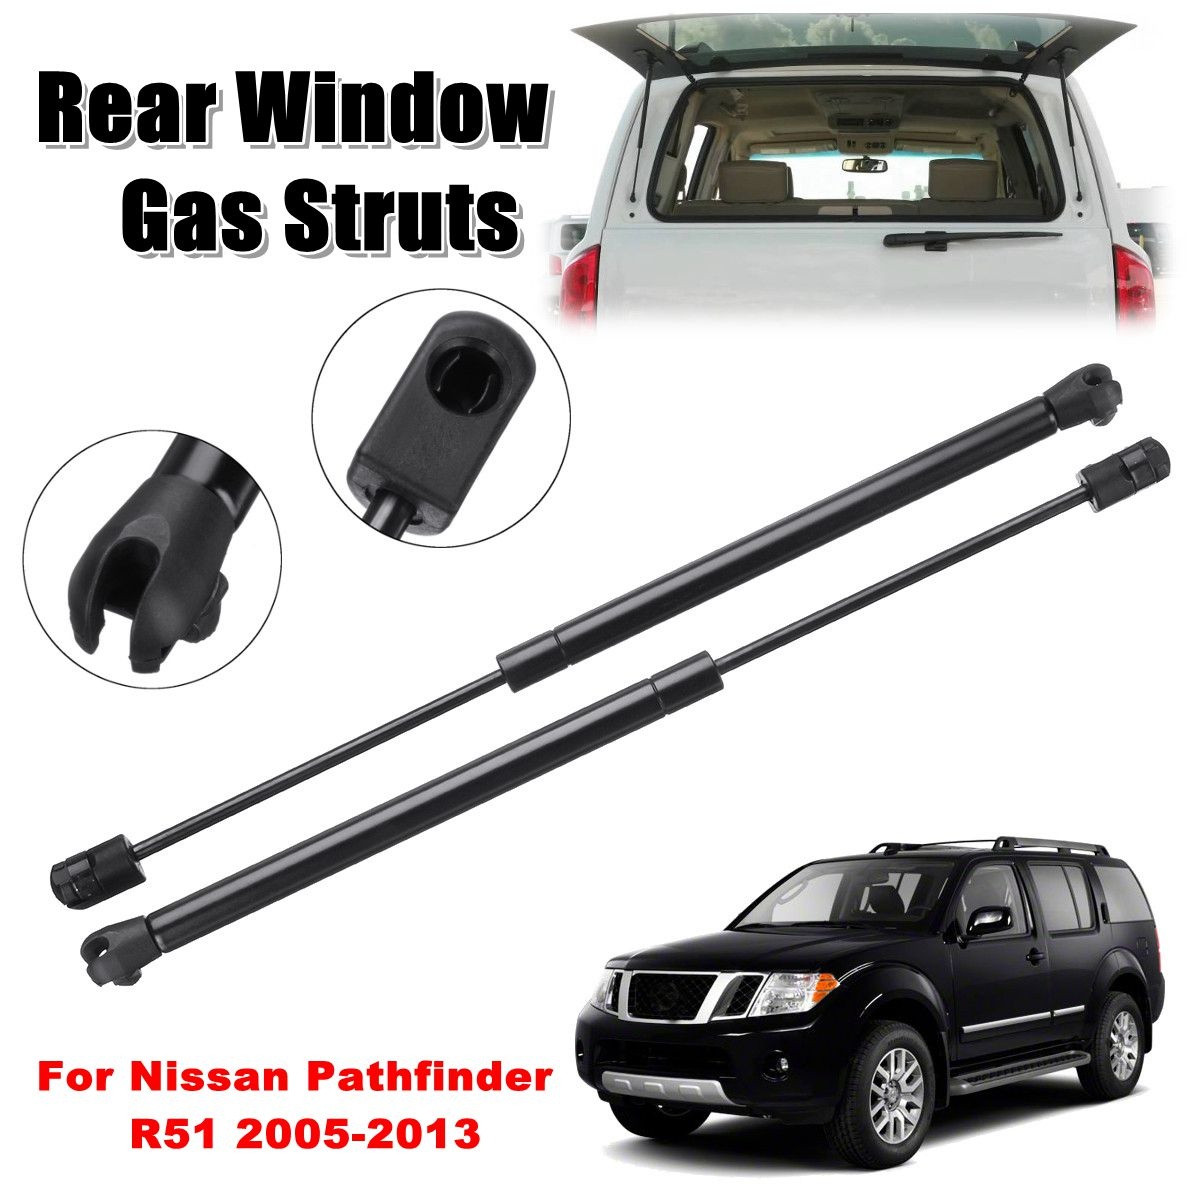 2X Rear Window Glass Strut Struts Support Bar Gas Sring 90460ZL90A For Nissan Pathfinder R51 2005 2006 2007 2008 2009 - 2013